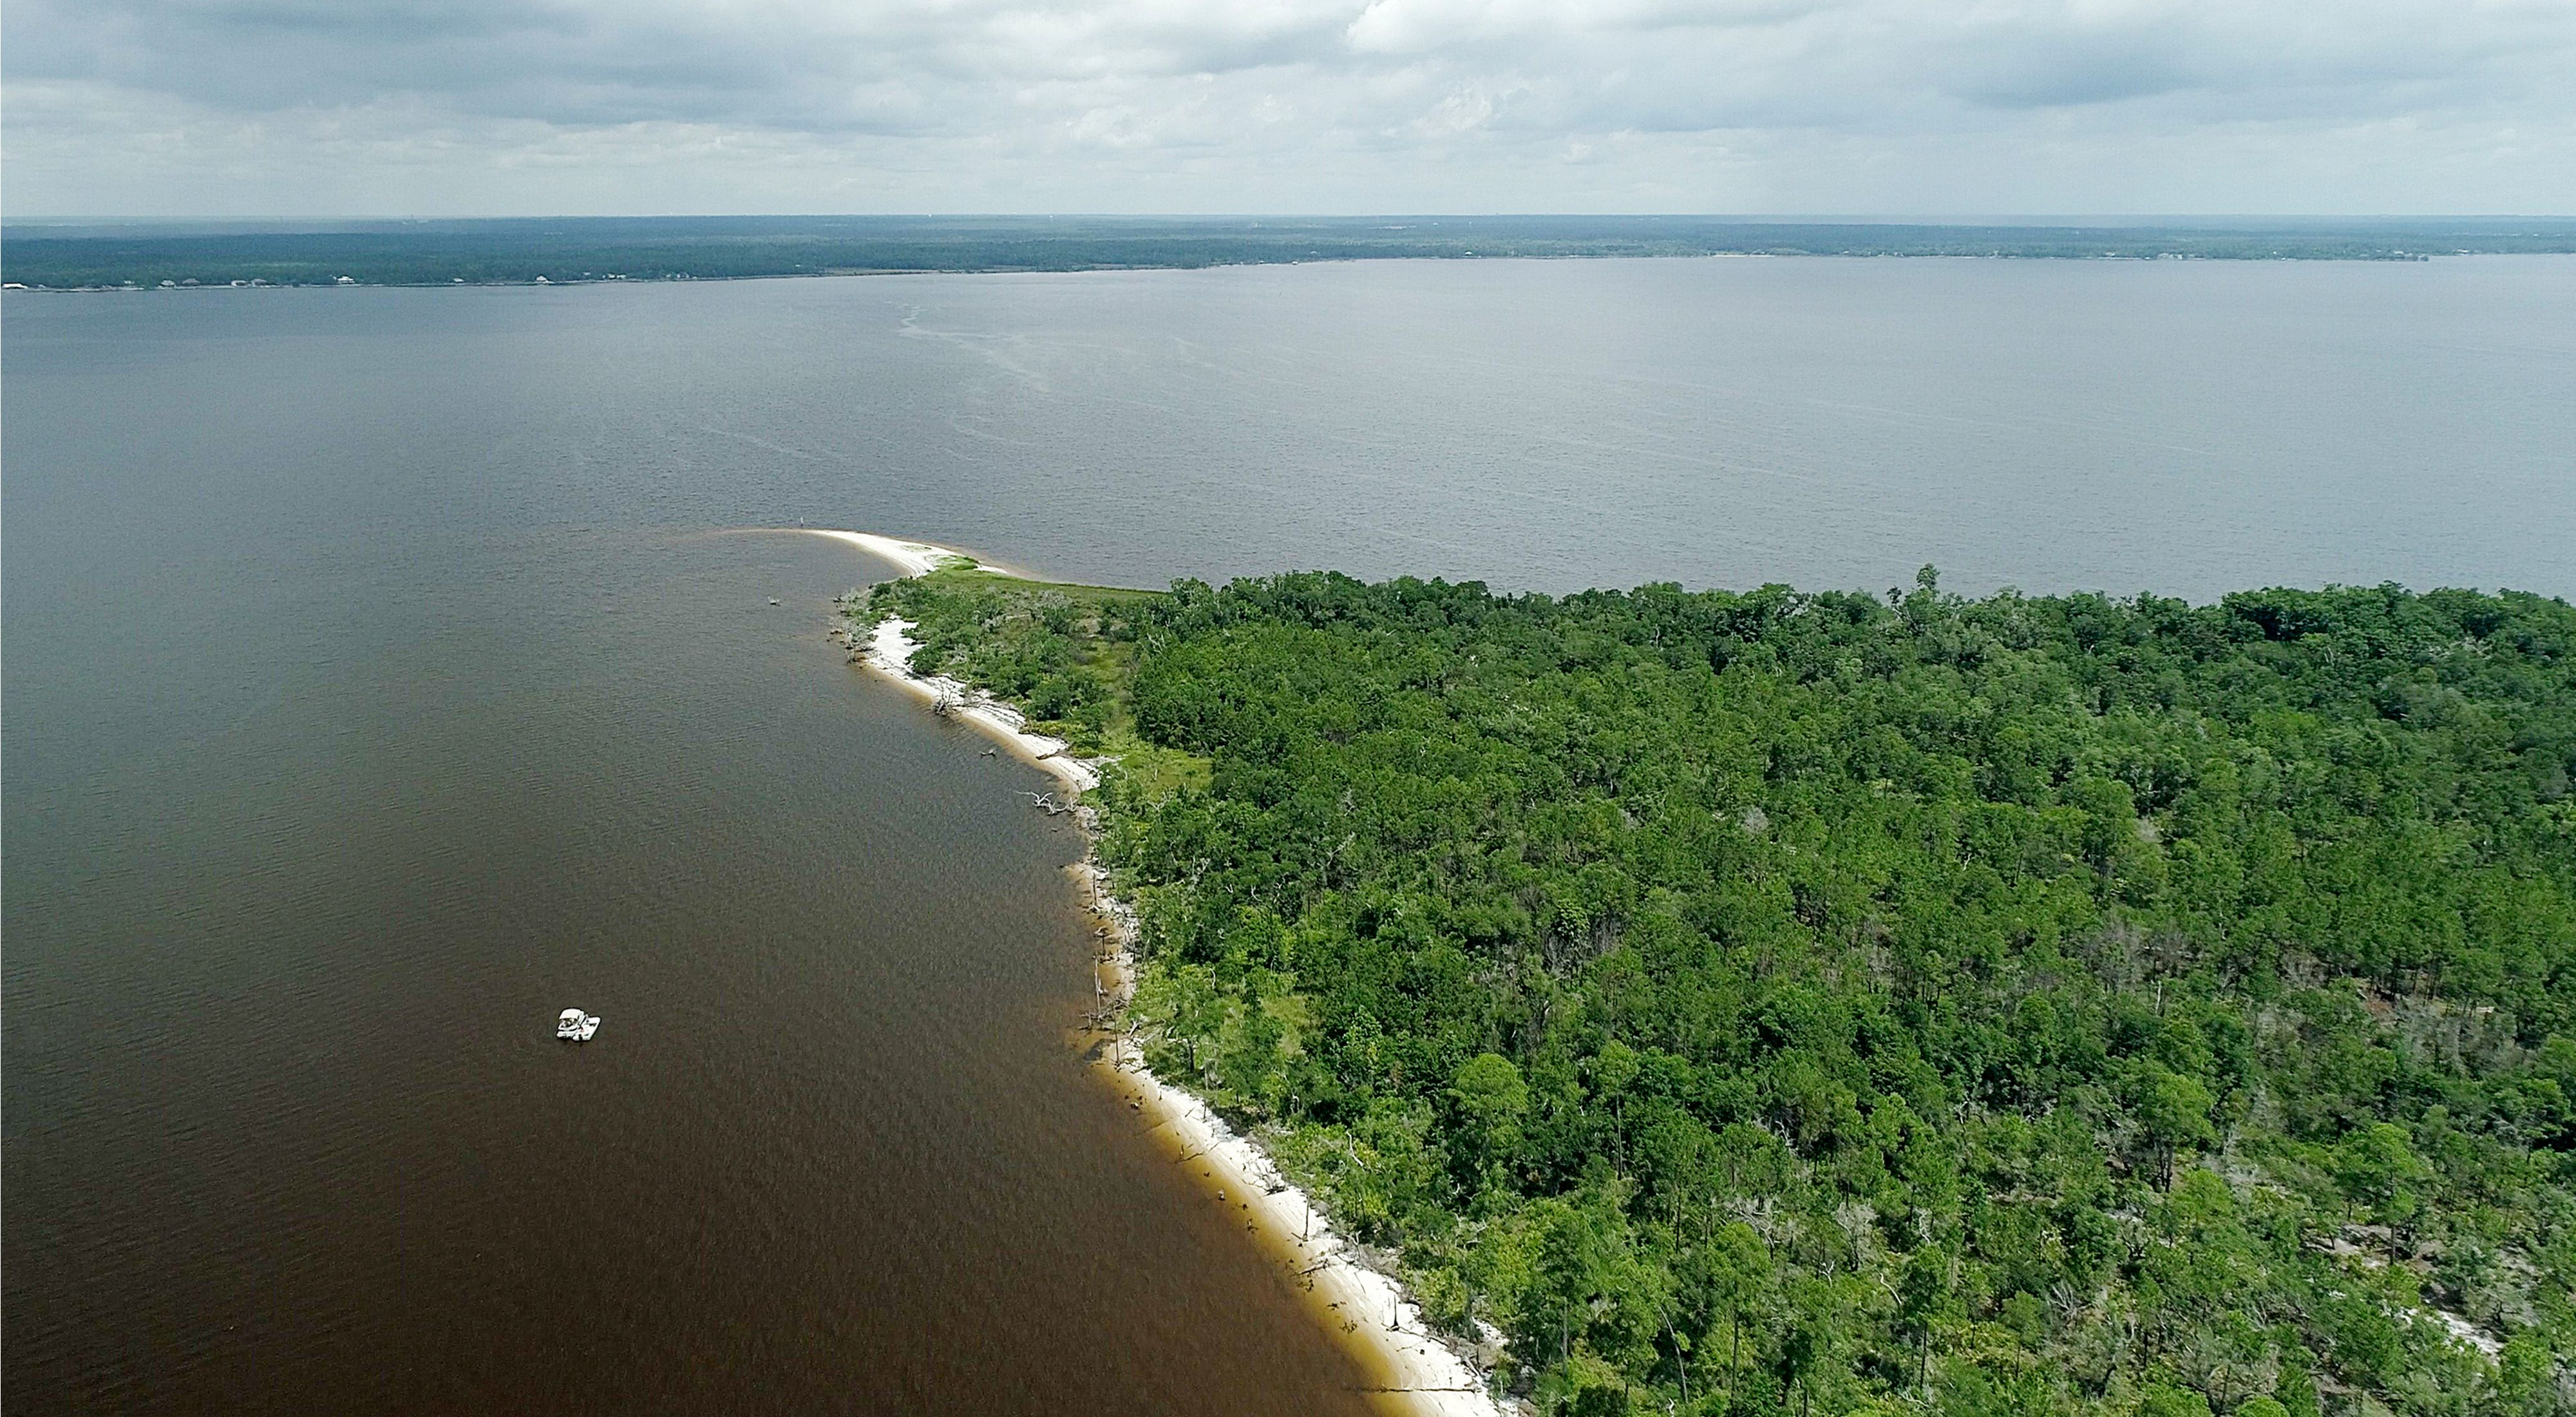 A tree-covered point of land with a sand spit at the end, extending into Pensacola Bay in Santa Rosa County, Florida.